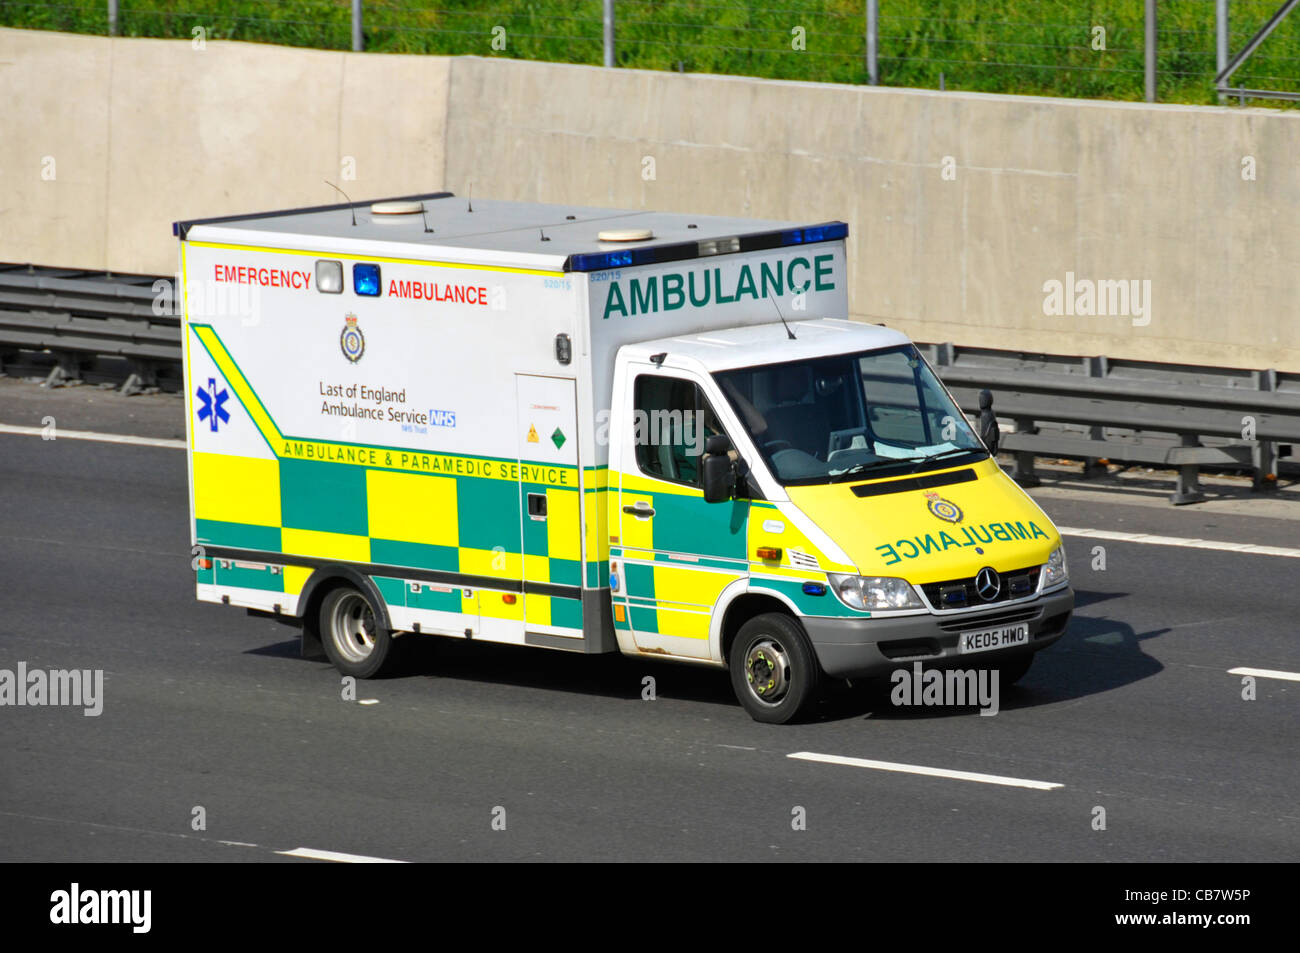 Emergency ambulance apparant spelling mistake on side stating Last instead of (assumed) East or possibly vandalism - Stock Image